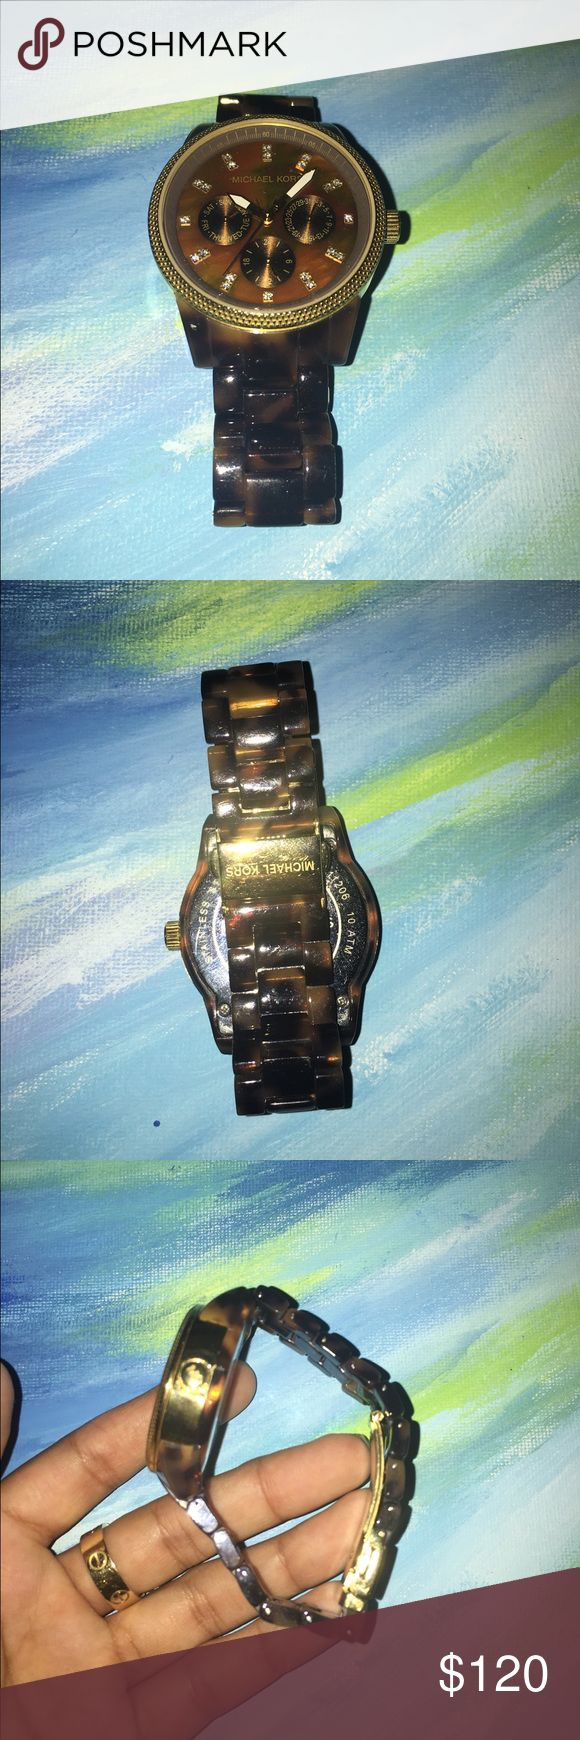 Michael Kors Tortoise Shell Watch Beautiful MK Tortoise Shell watch! originally bought from Nordstrom and is in very good condition. I haven't worn it much but it works great and looks great! So chic :-) also accepting offers! Michael Kors Accessories Watches